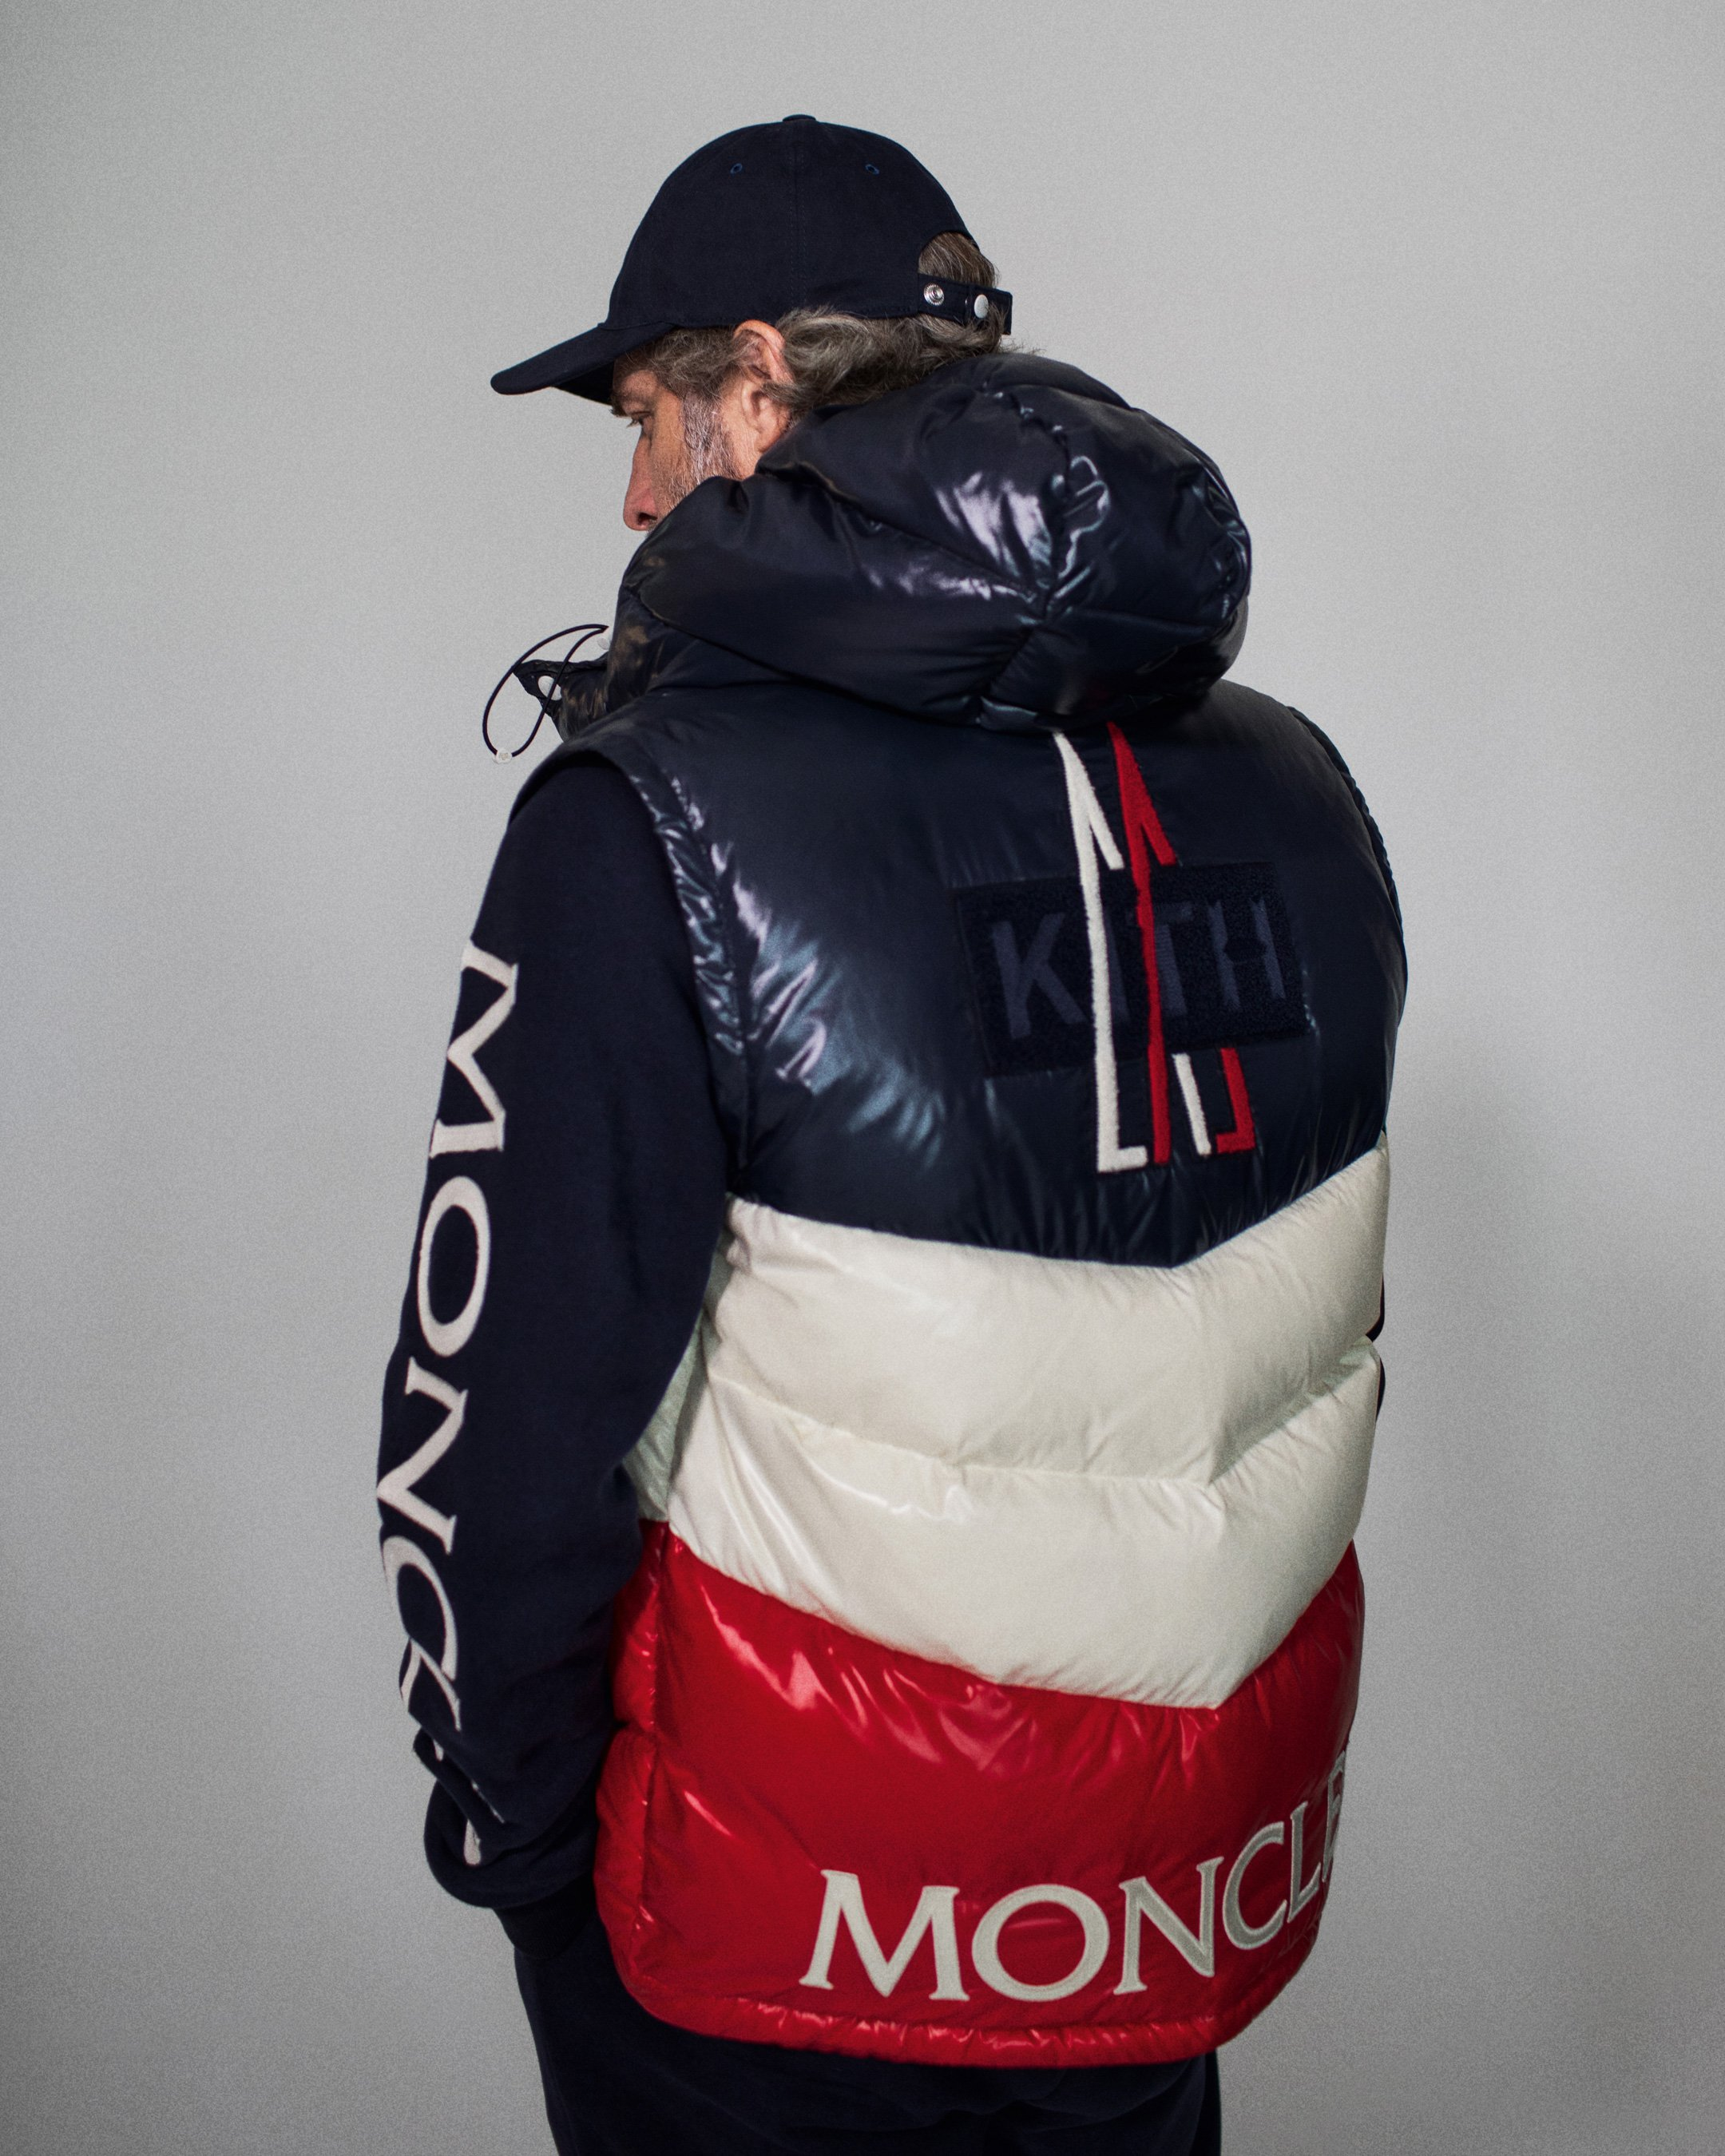 e6611d9fa Moncler, Asics, and Kith Link for Winter Footwear and Apparel ...